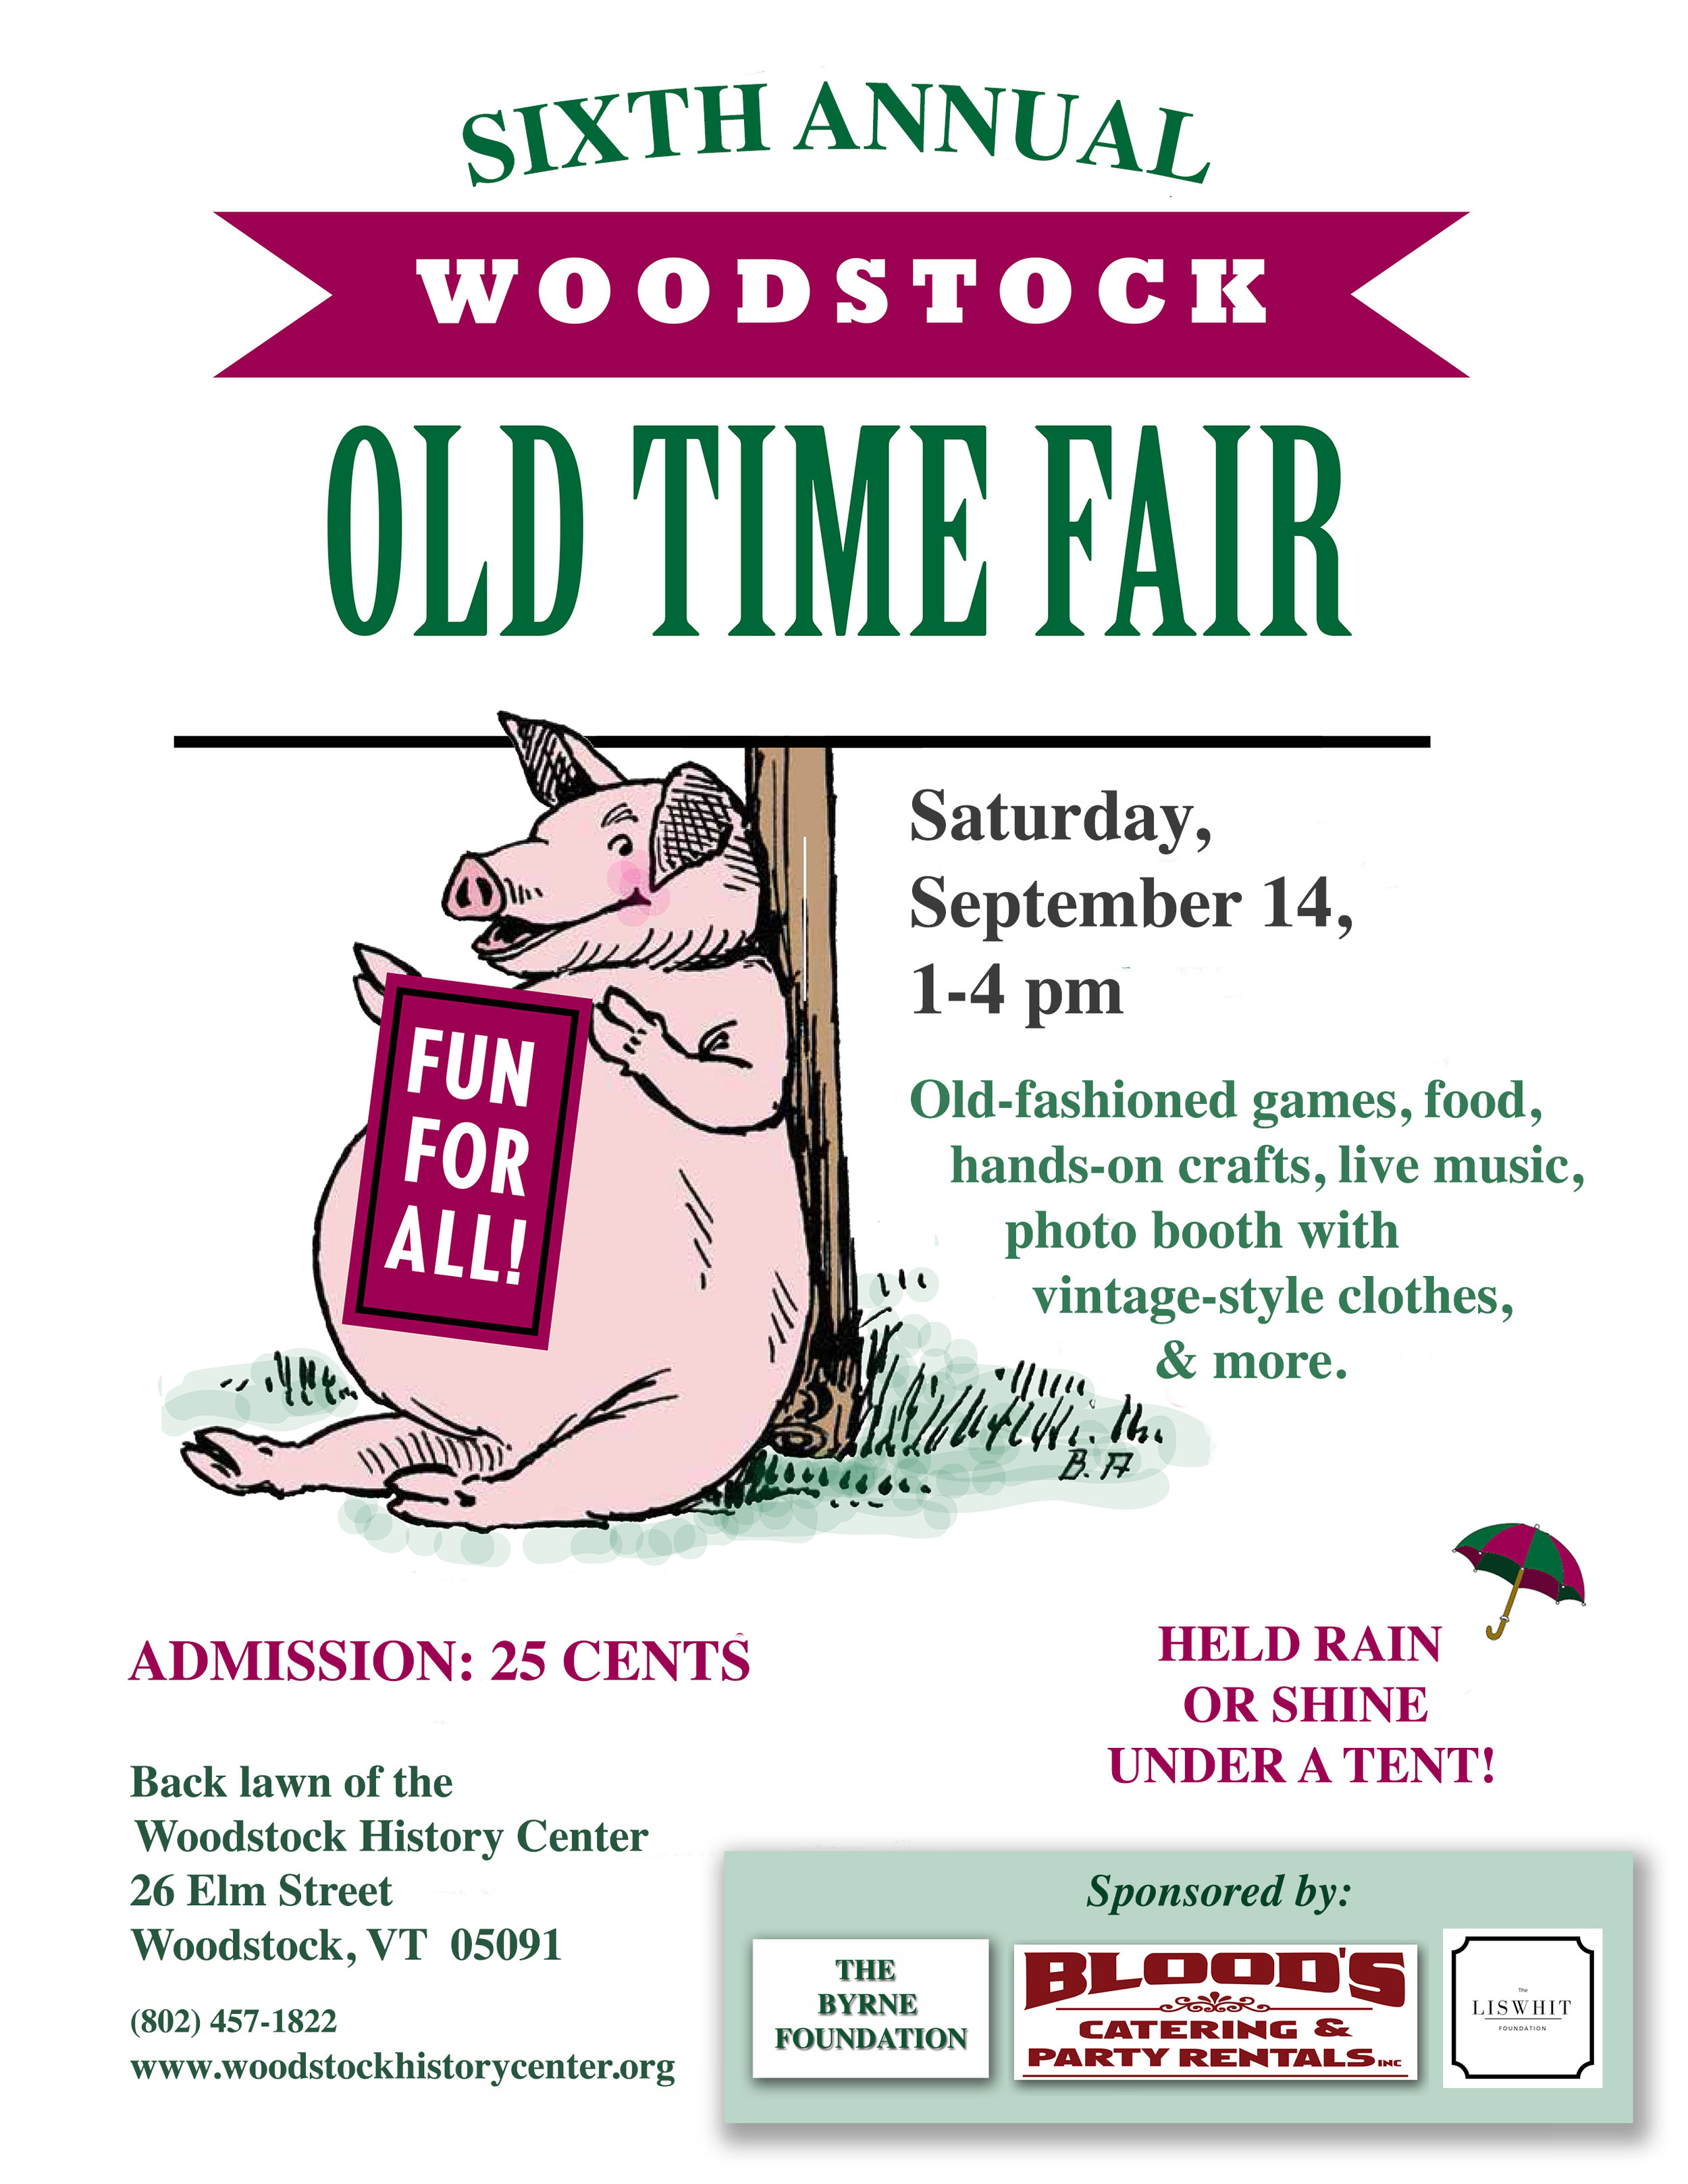 Old Time Fair Poster 2019 v.1 8.5 x 11 copy.jpg